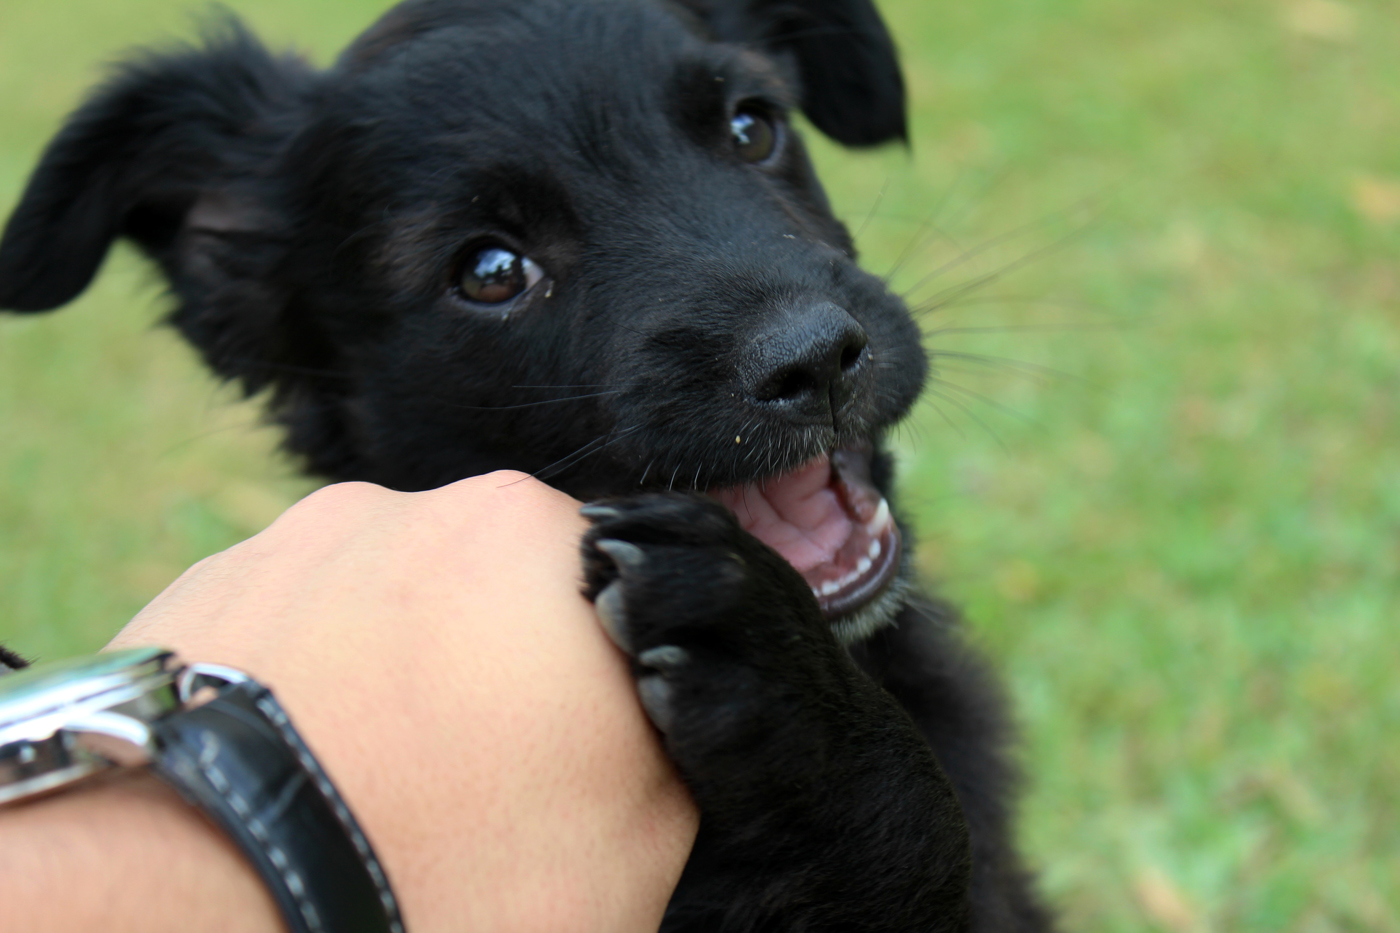 A puppy looking happy as it mouths its owners hand